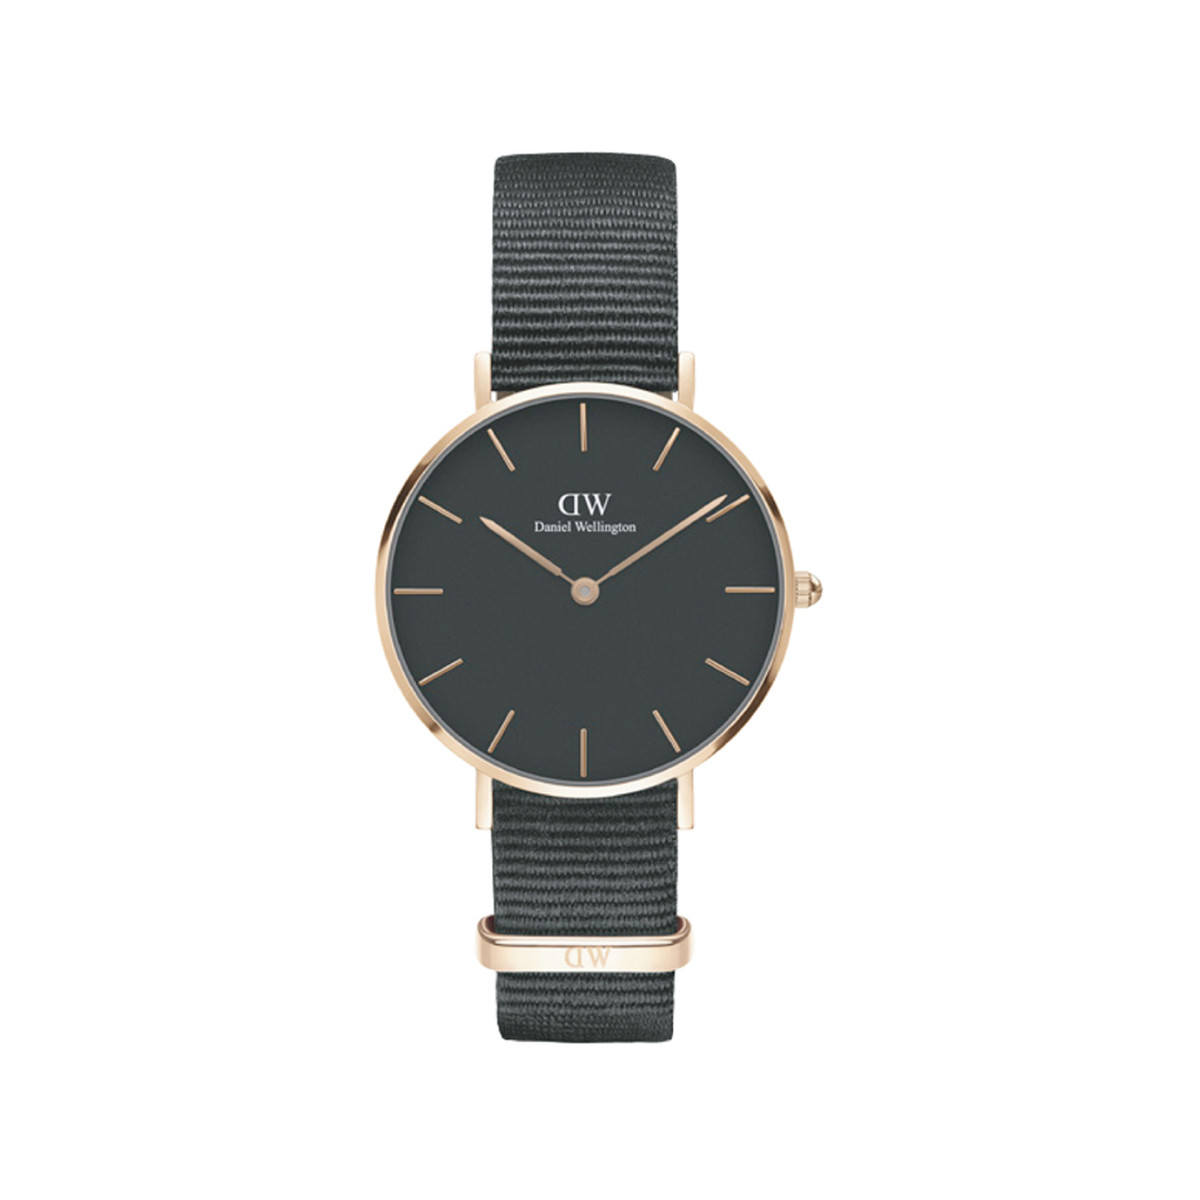 montre daniel wellington femme acier tissu noir femme mod le dw00100215 maty. Black Bedroom Furniture Sets. Home Design Ideas